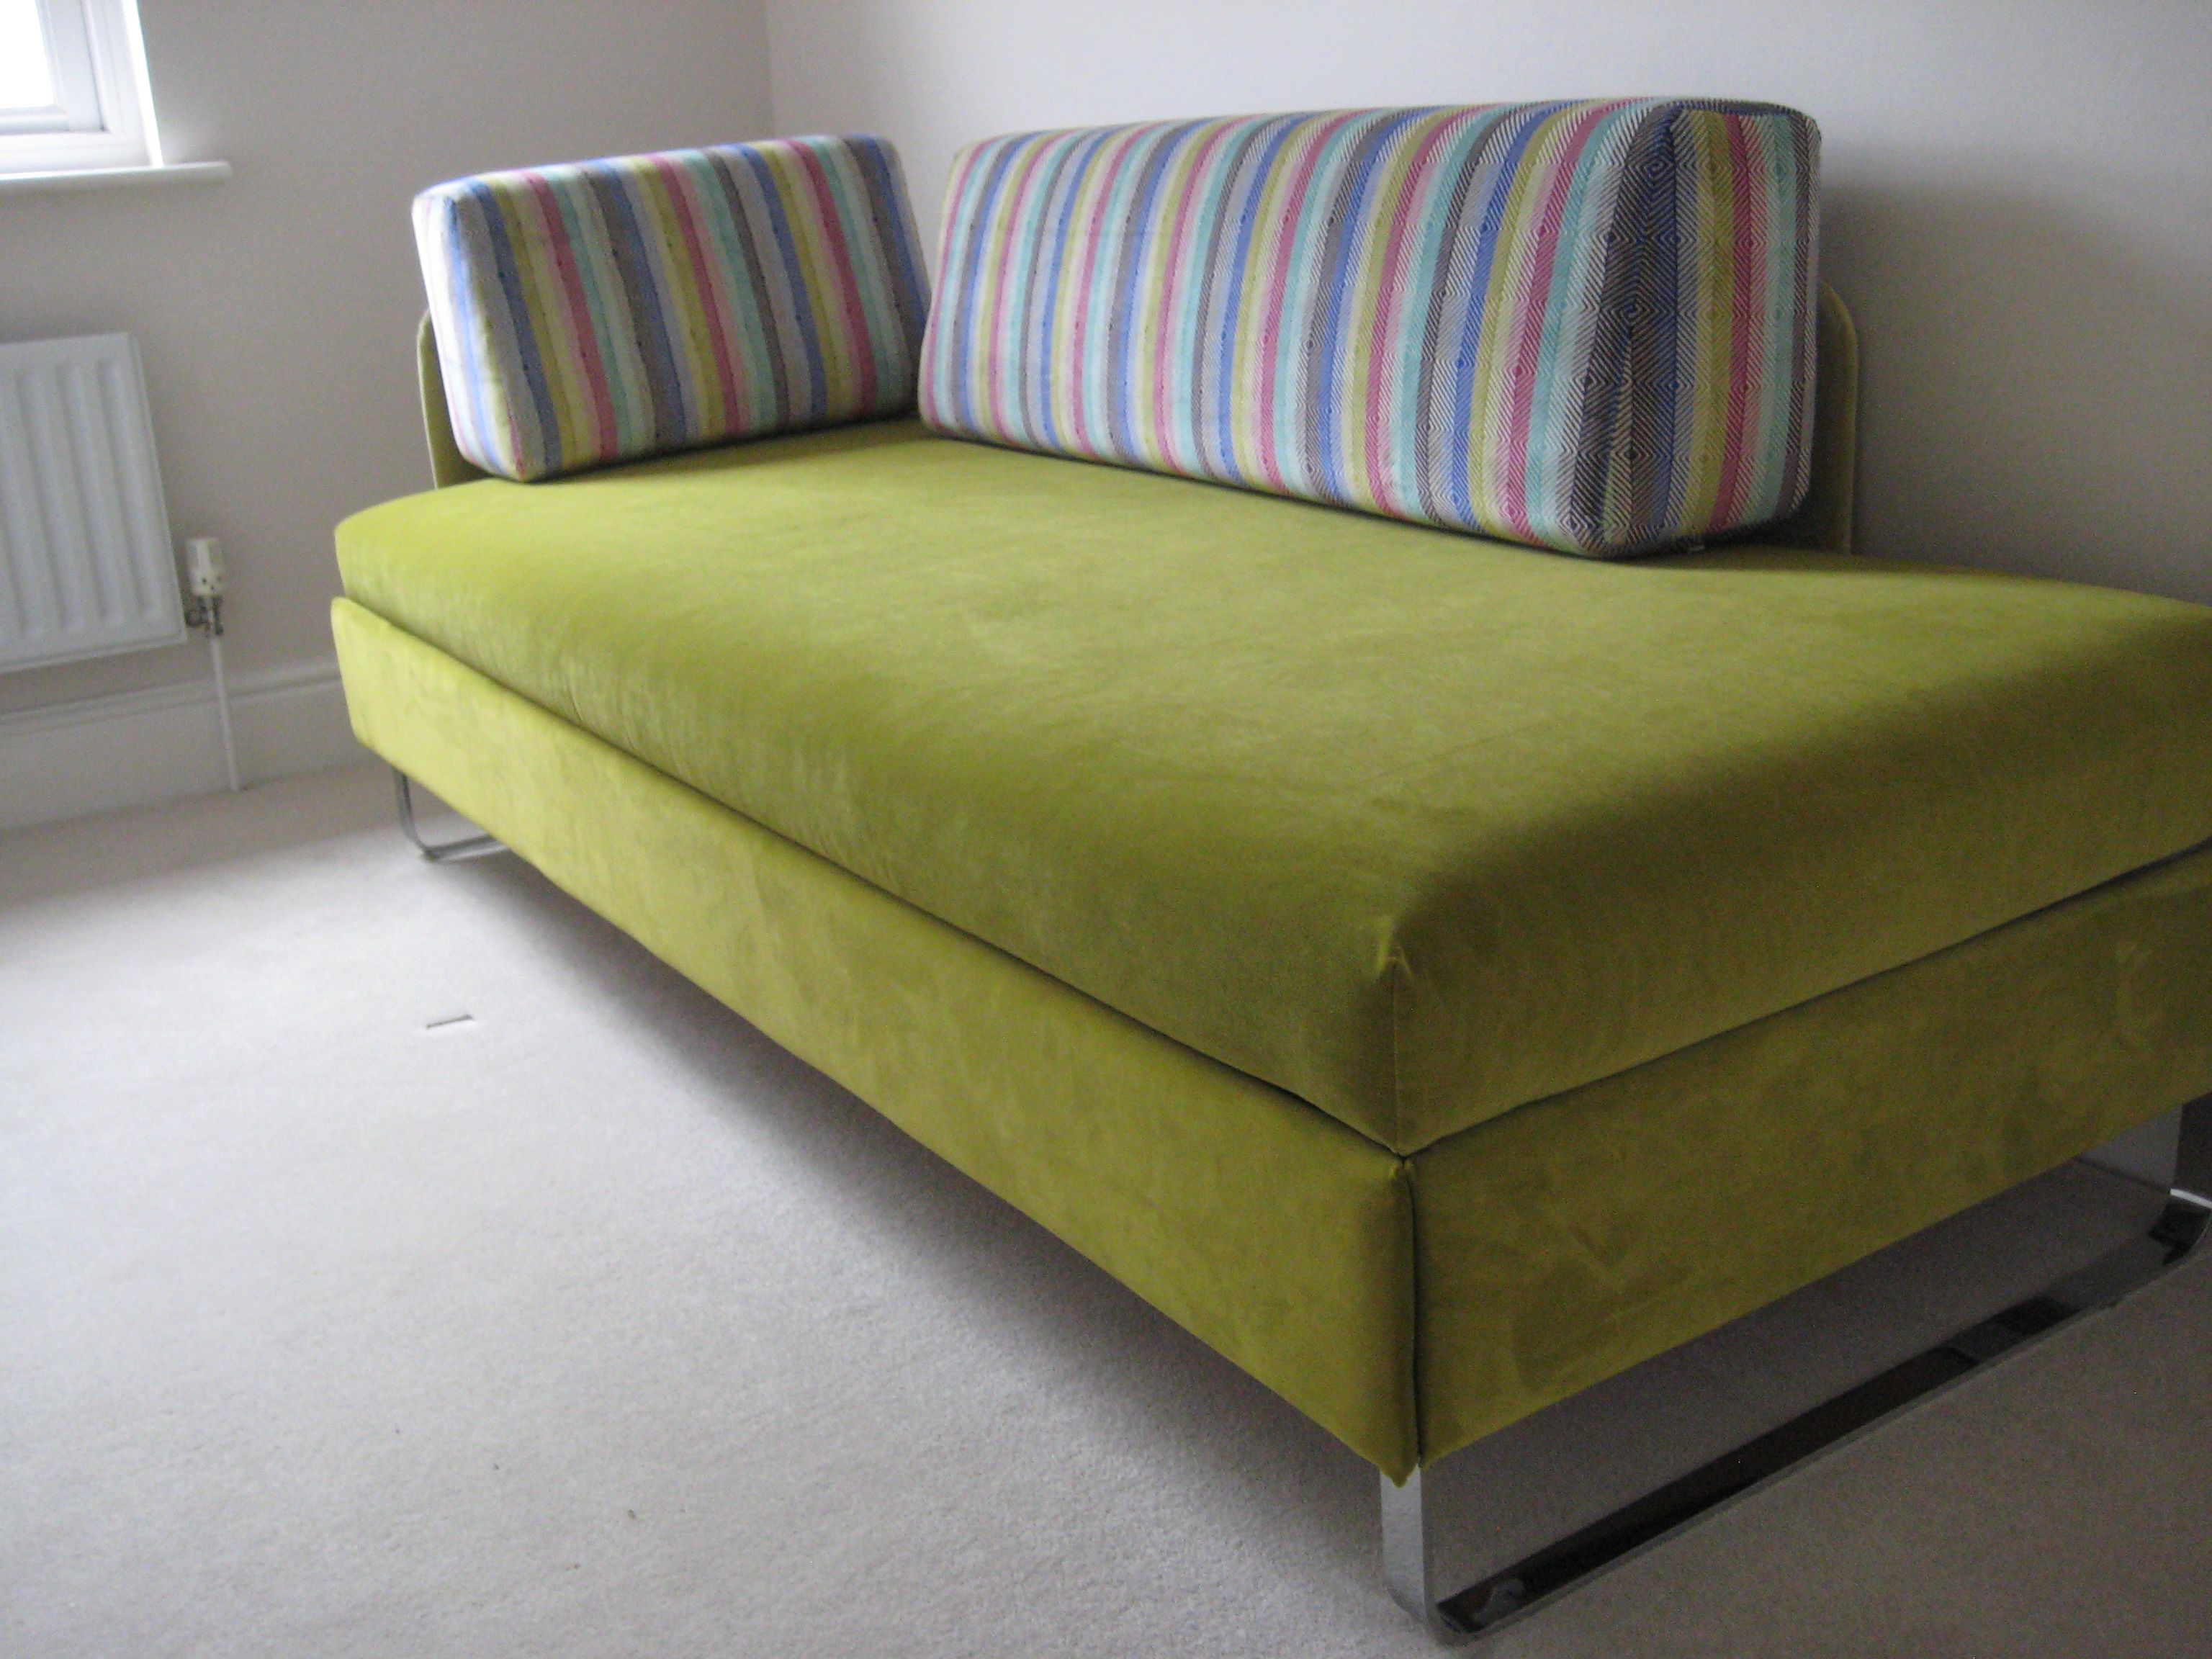 Stylish And Practical Contemporary Furniture For Every: Looking For A Contemporary, Stylish Double Sofa Bed? The